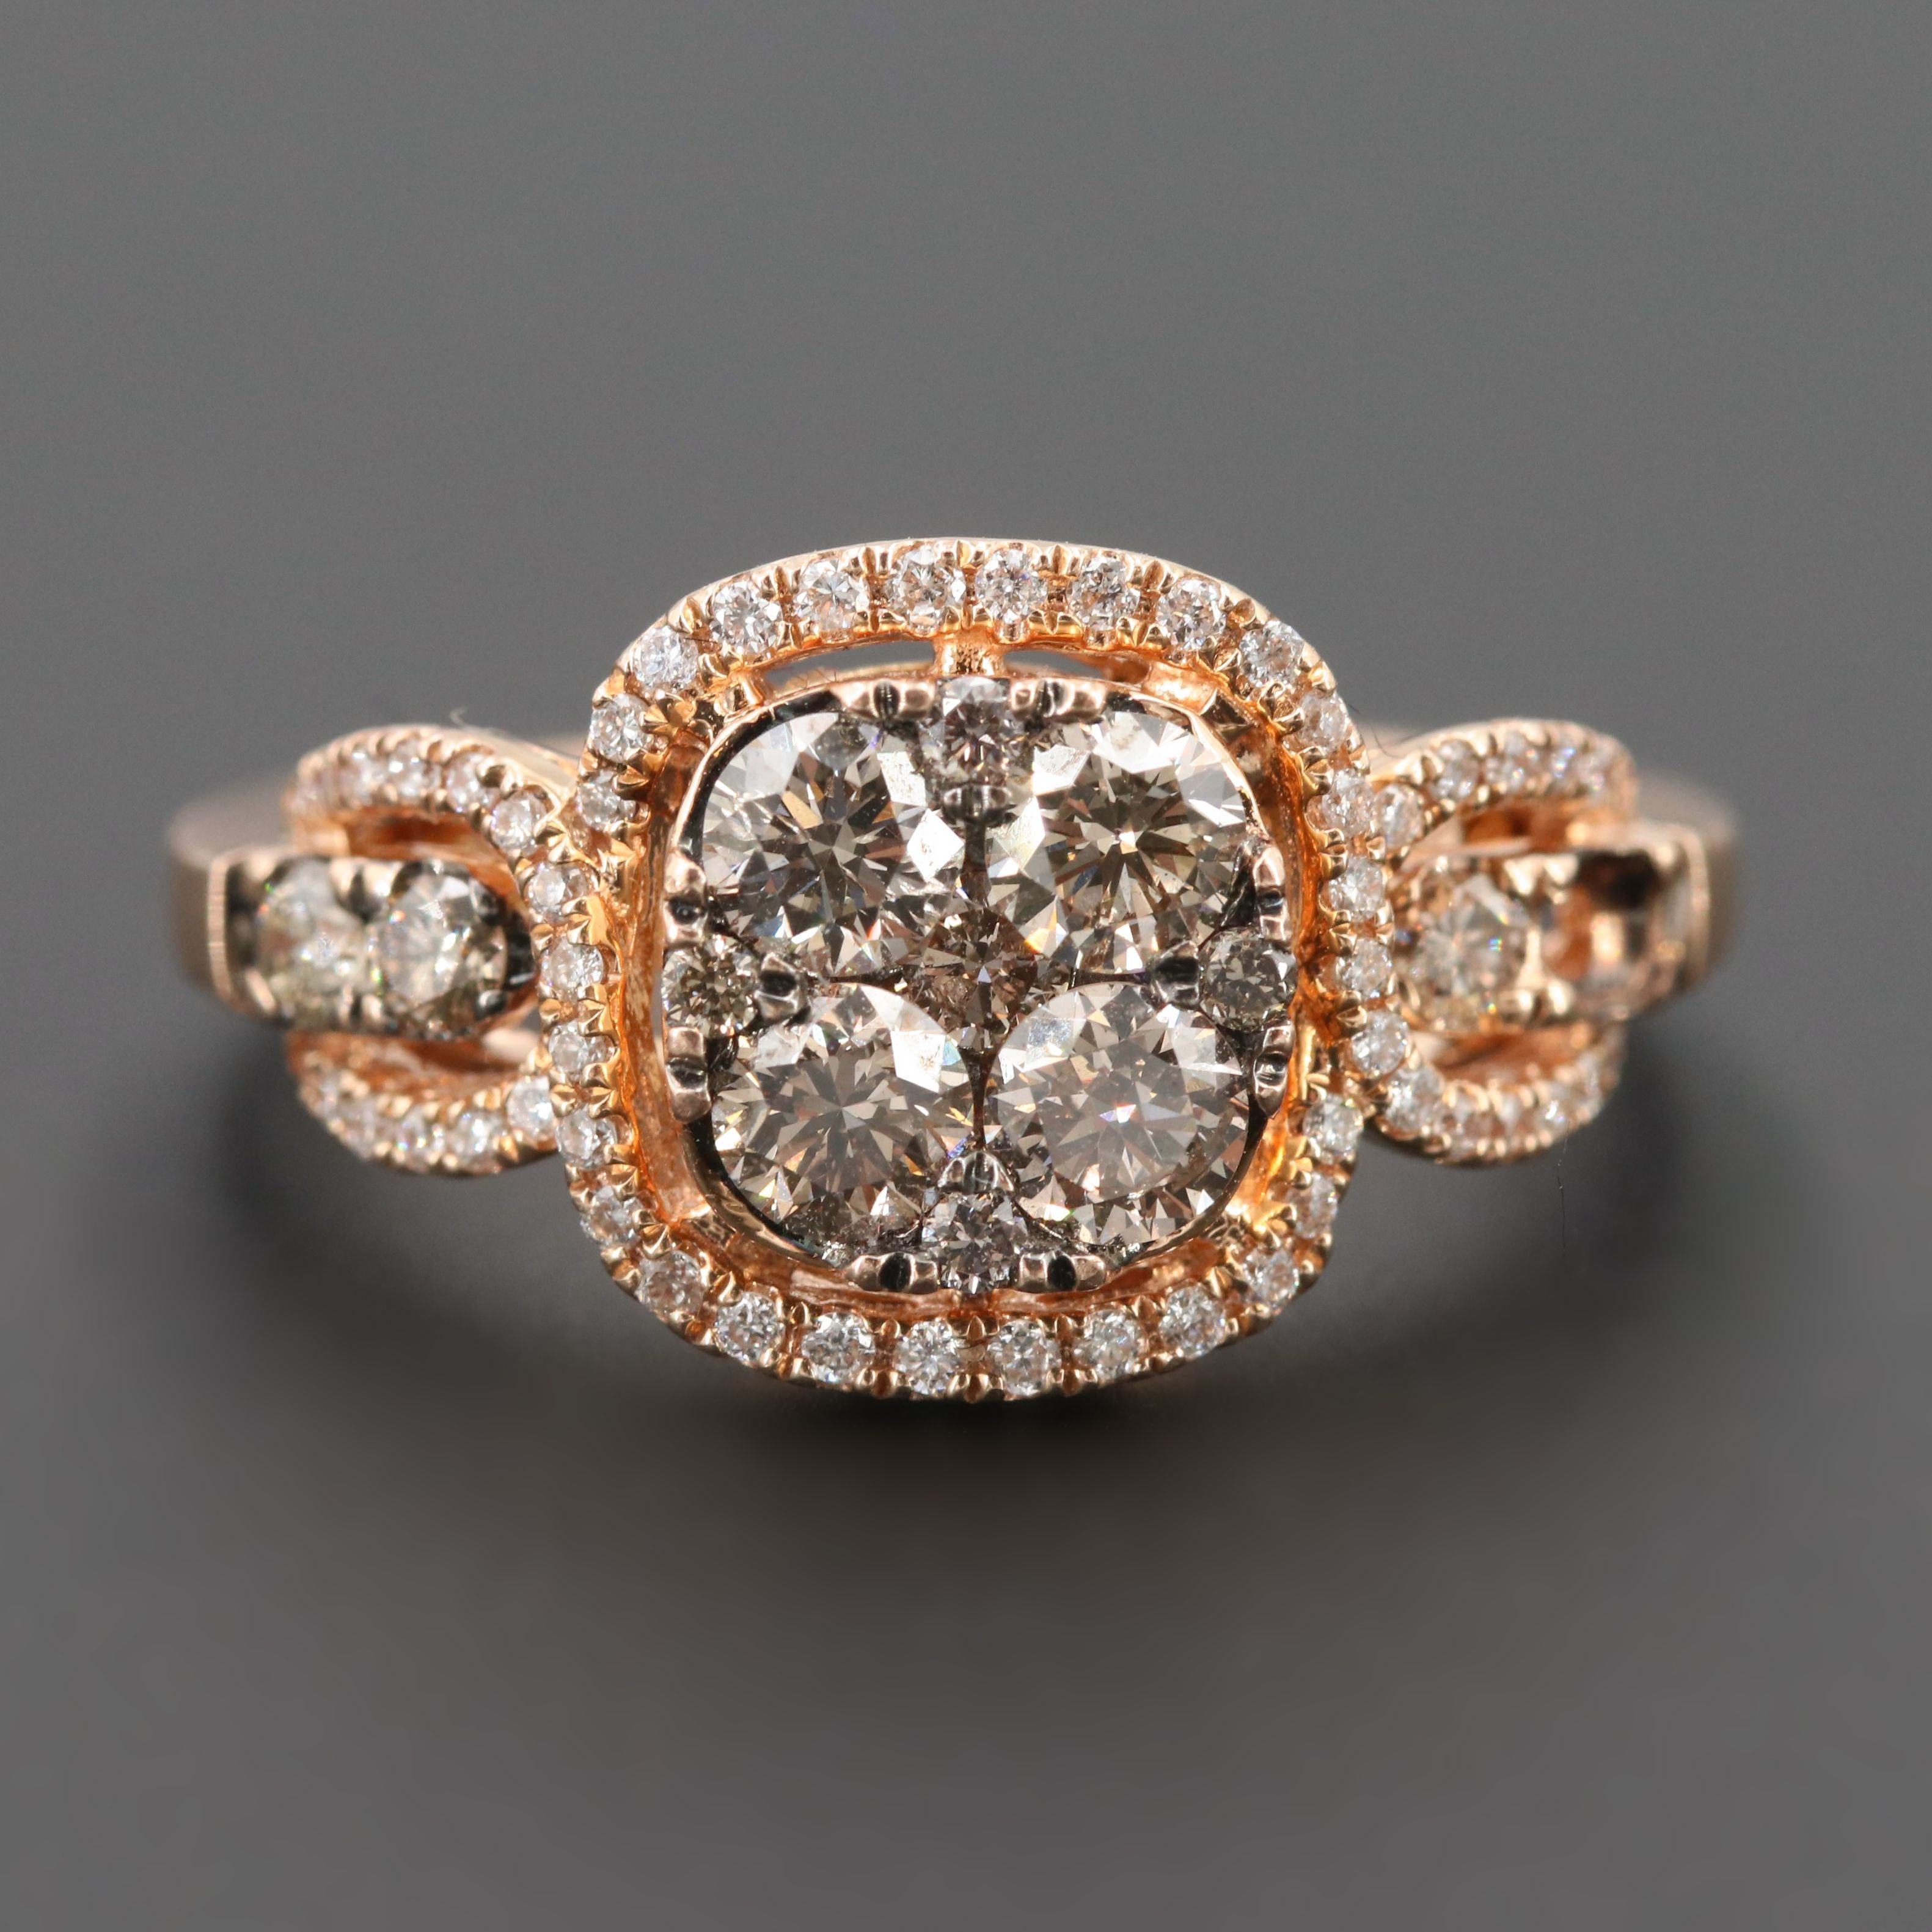 Le Vian Limited Edition 14K Rose Gold 0.97 CTW Diamond and Ruby Ring